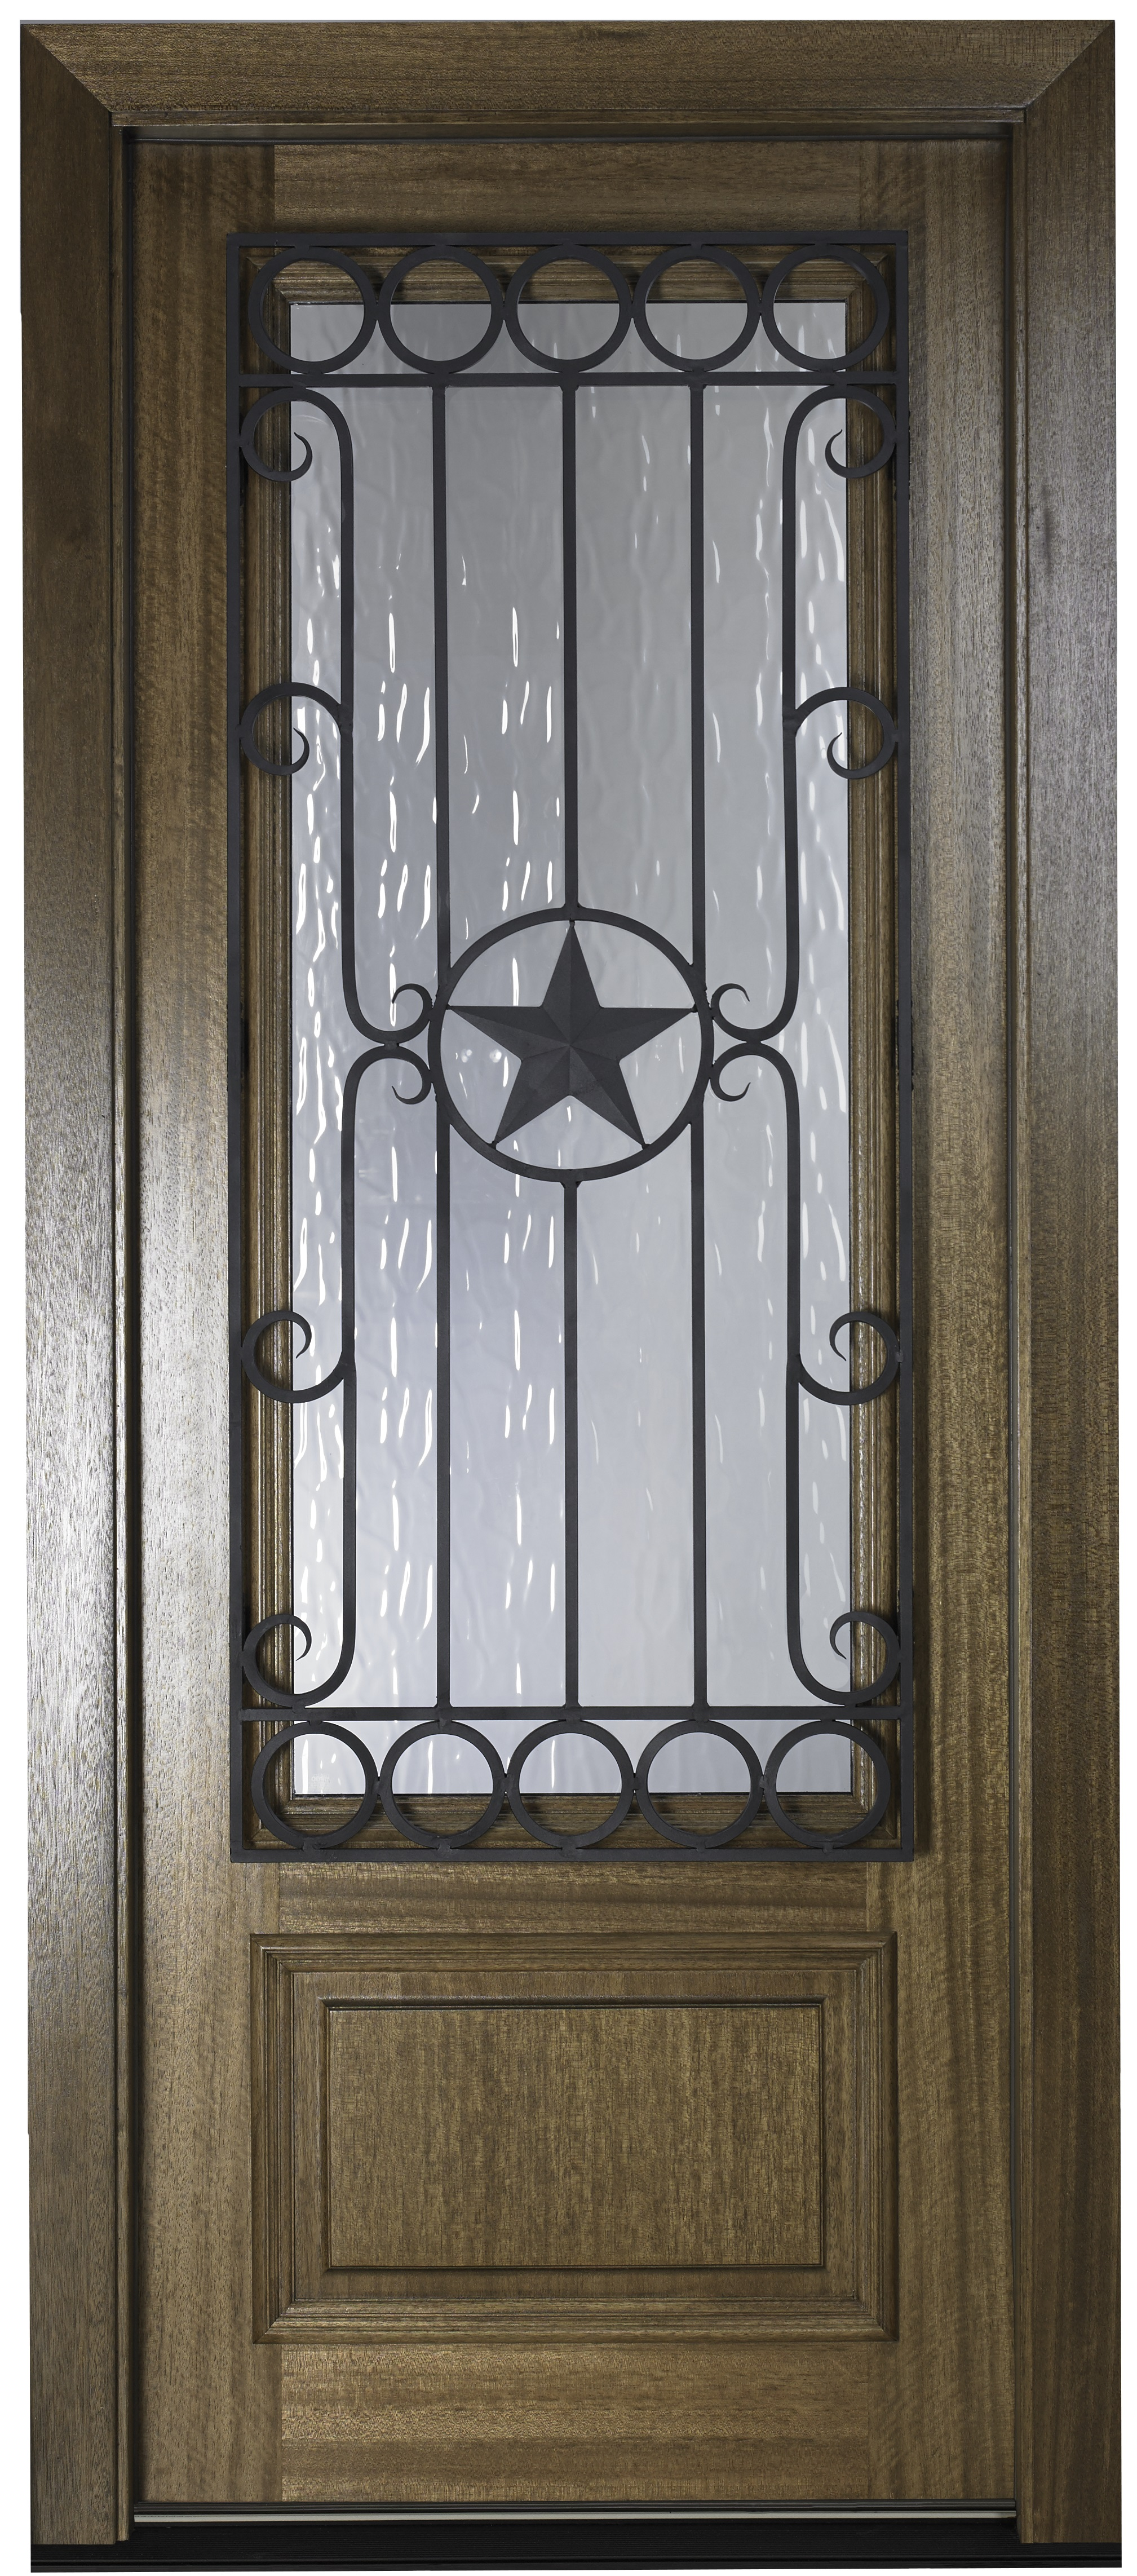 Delta Wrought Iron Grille Collection - DT822FW w- Laredo Grill.jpg